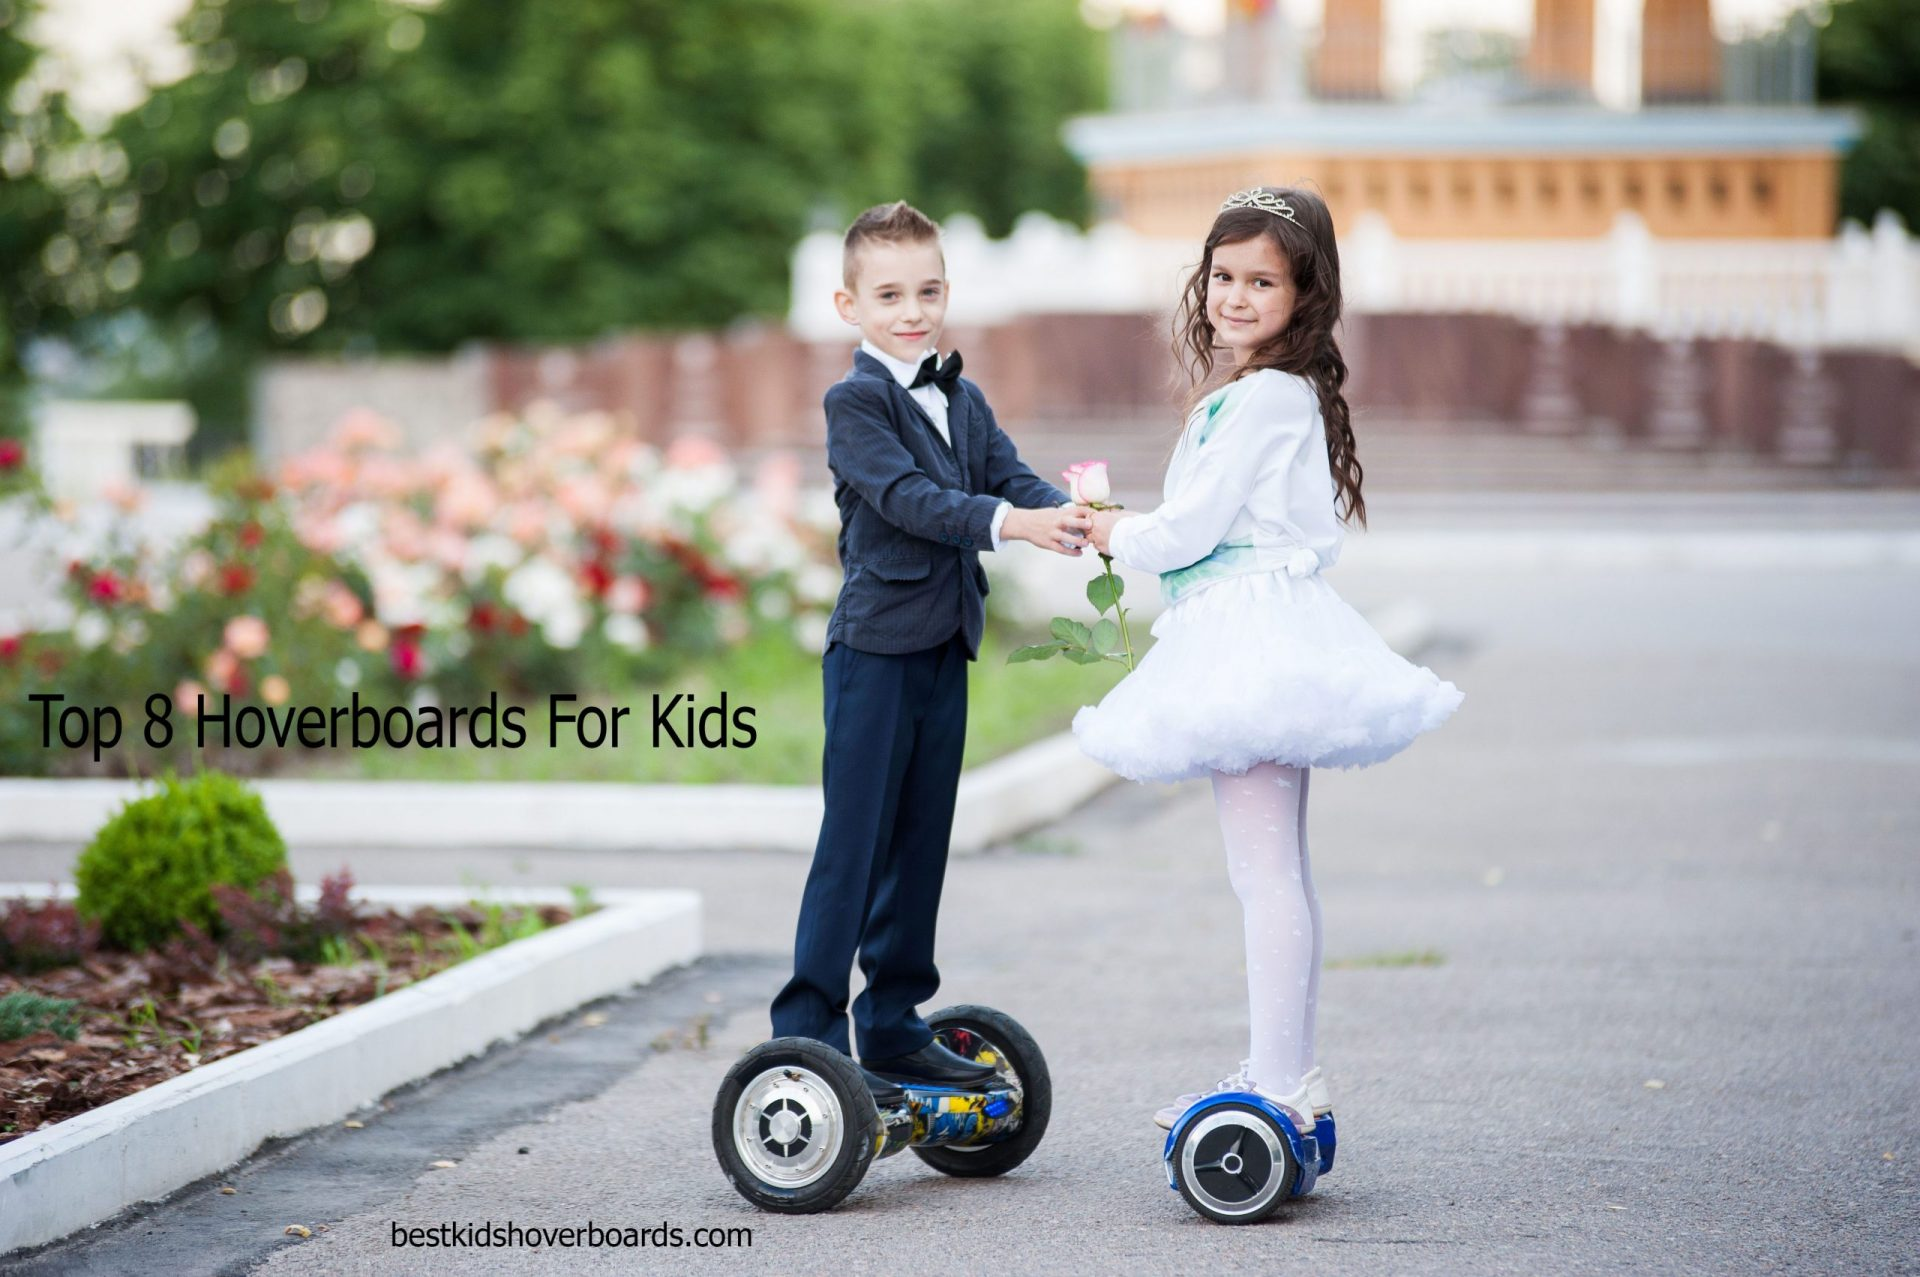 Top 8 Hoverboards For Kids